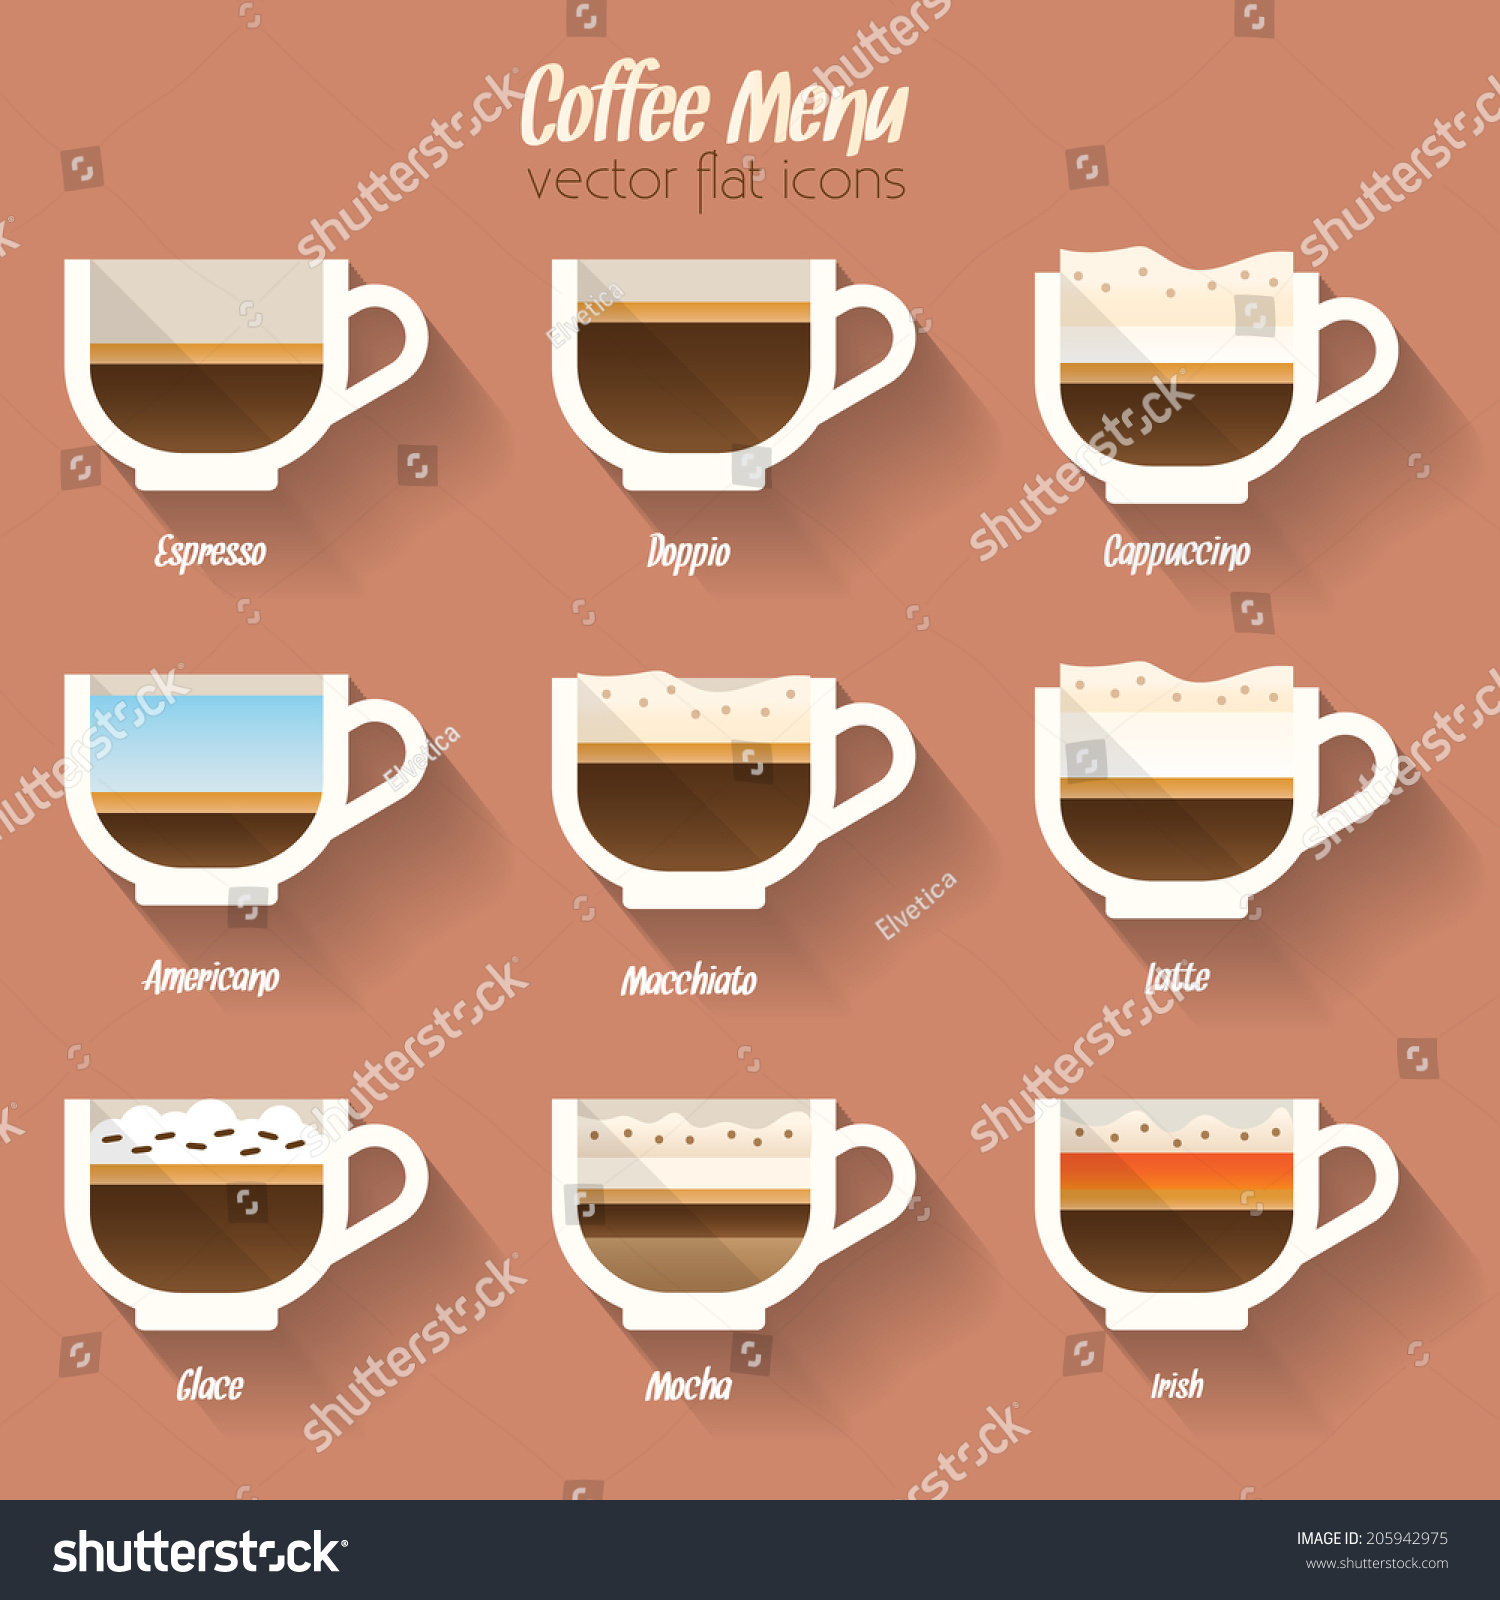 Coffee Menu Icon Set. Buttons For Web And Apps. Coffee